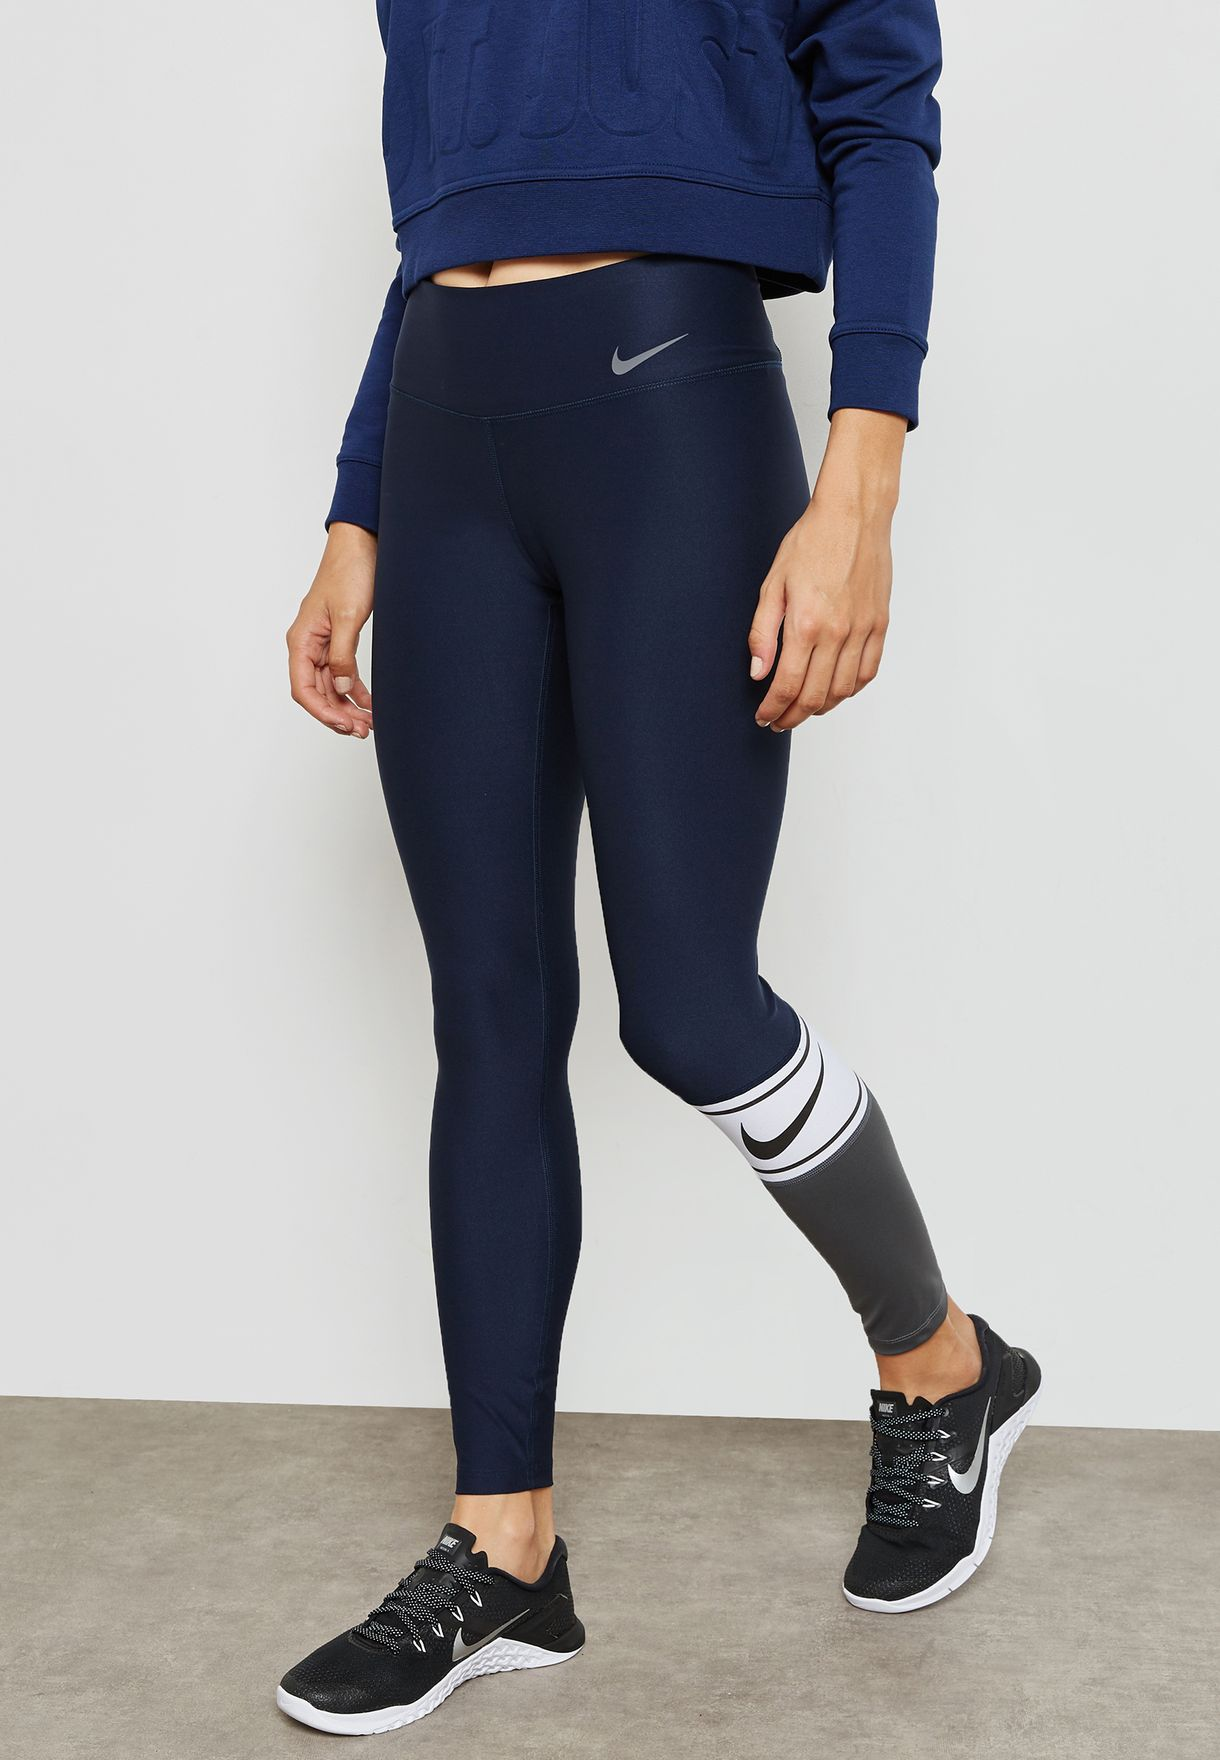 46b66166247d7 Shop Nike navy Power Colour Block Tights 905137-451 for Women in UAE ...